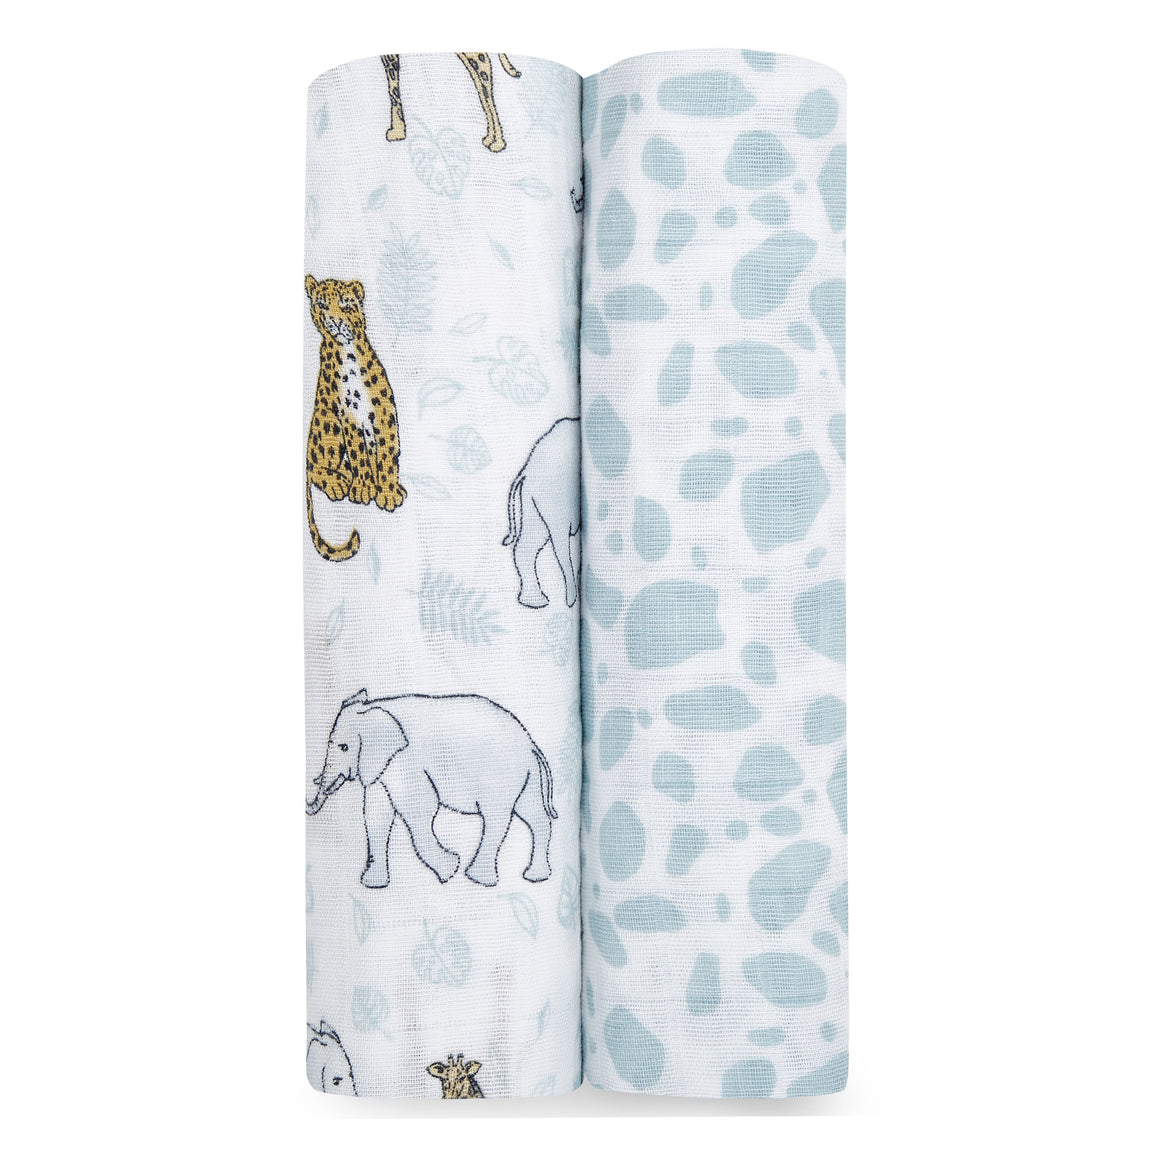 aden + anais jungle 2-pack muslin swaddles